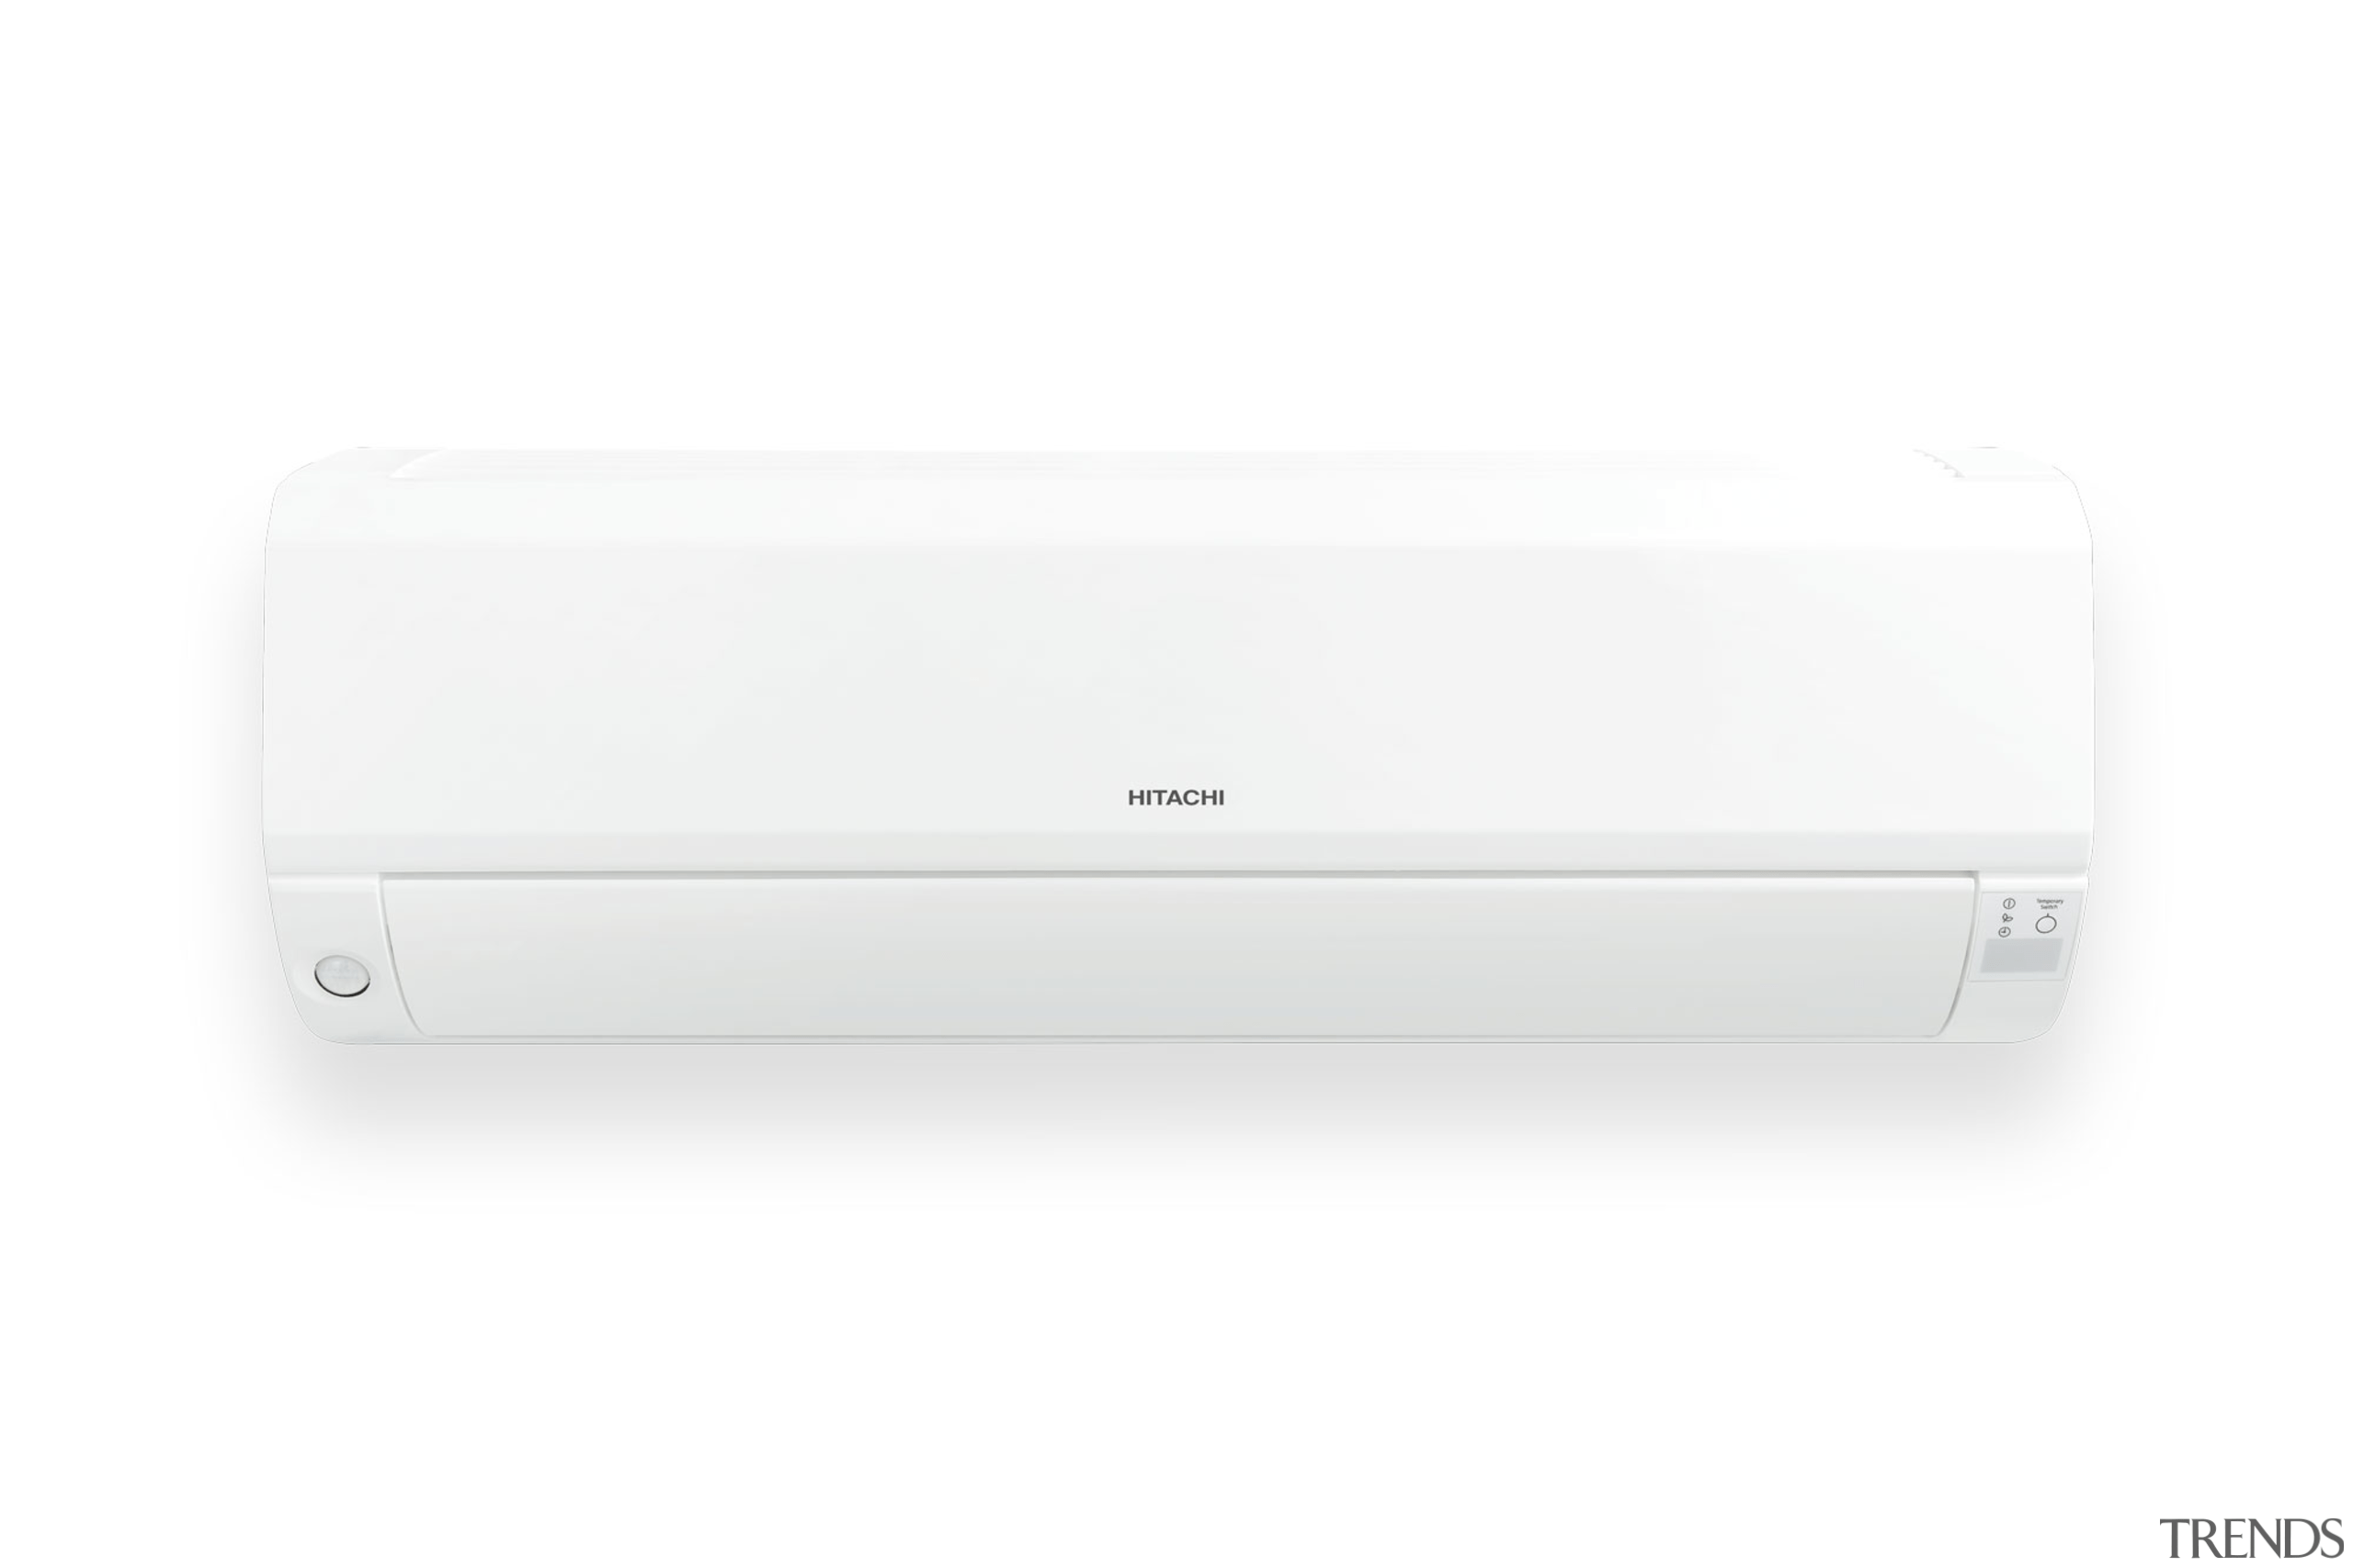 Hitachi Wall Mount Split SystemsWith our two ranges electronic device, electronics, product, rectangle, technology, white, white